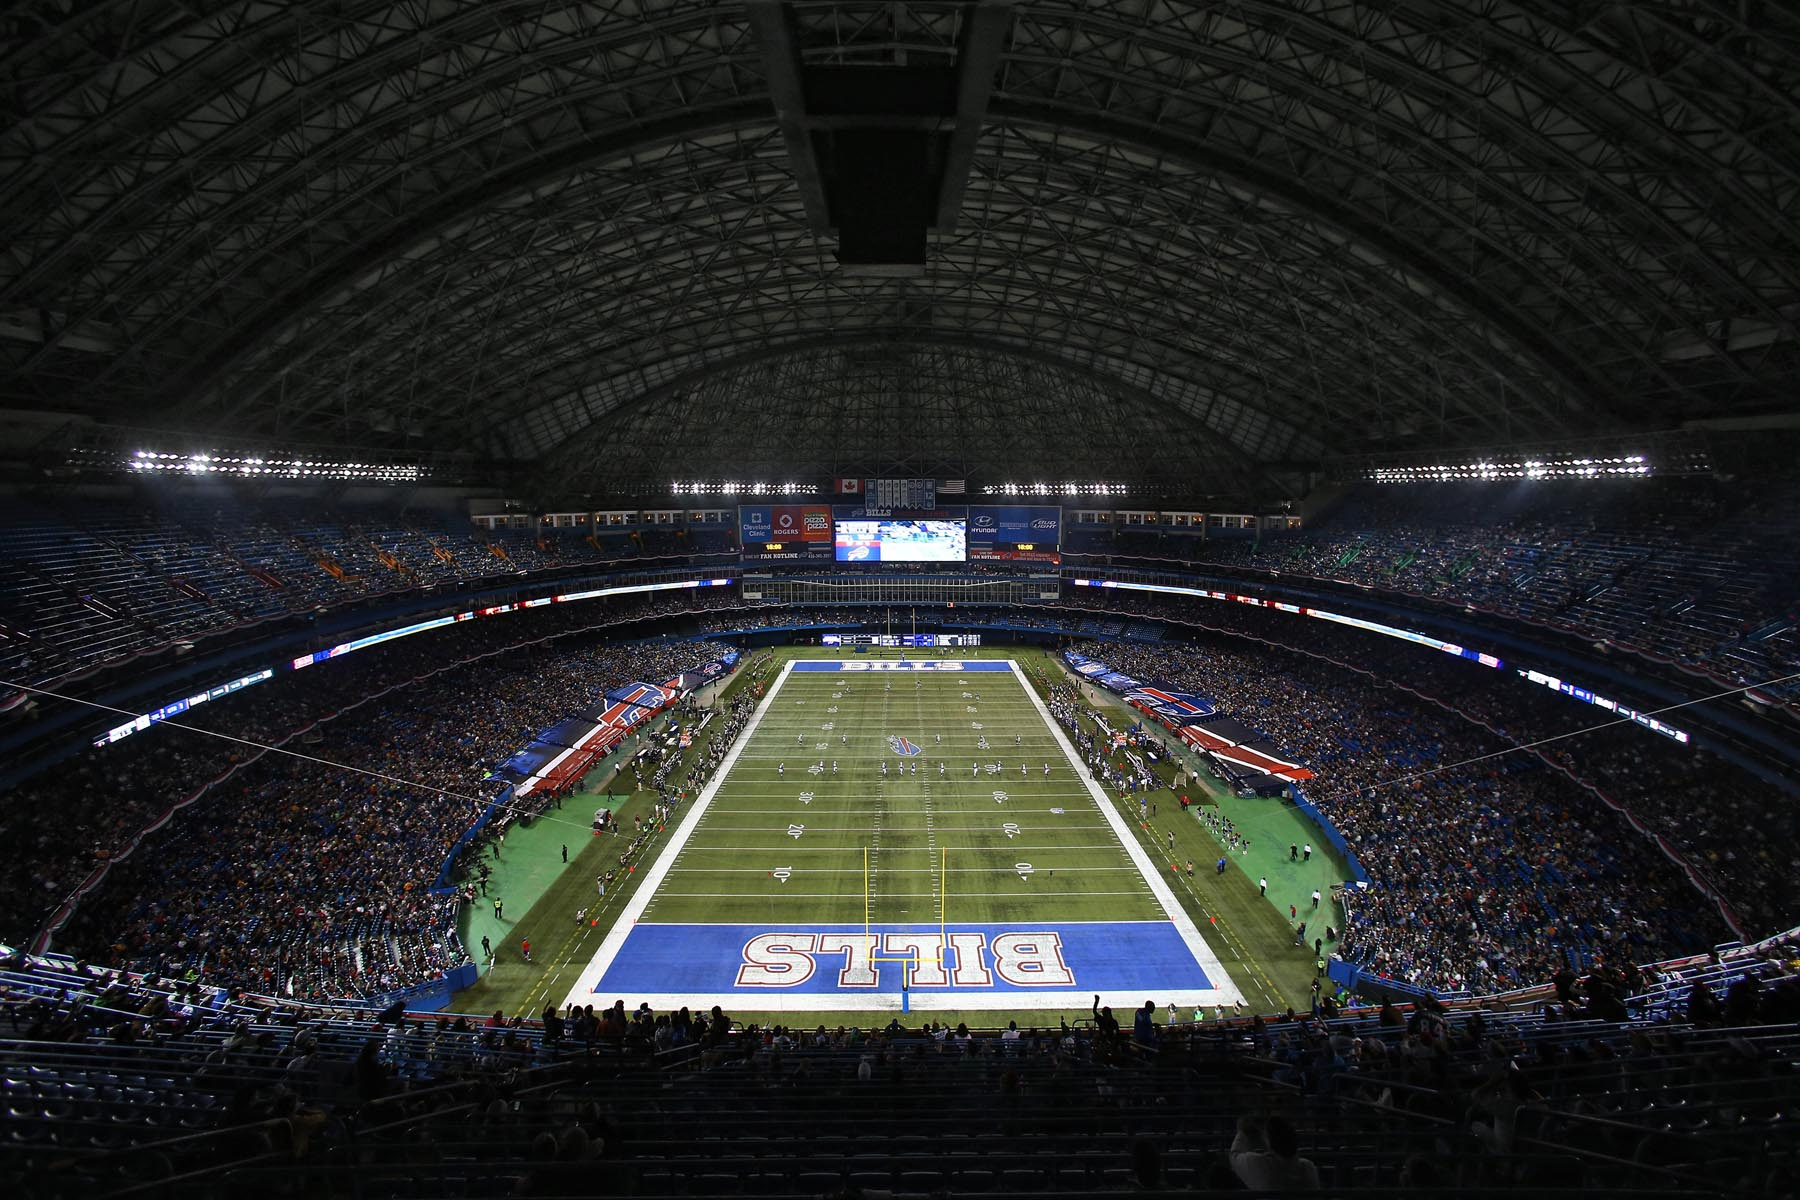 Hot Tickets on sale for Toronto Bills Falcons game  for sale